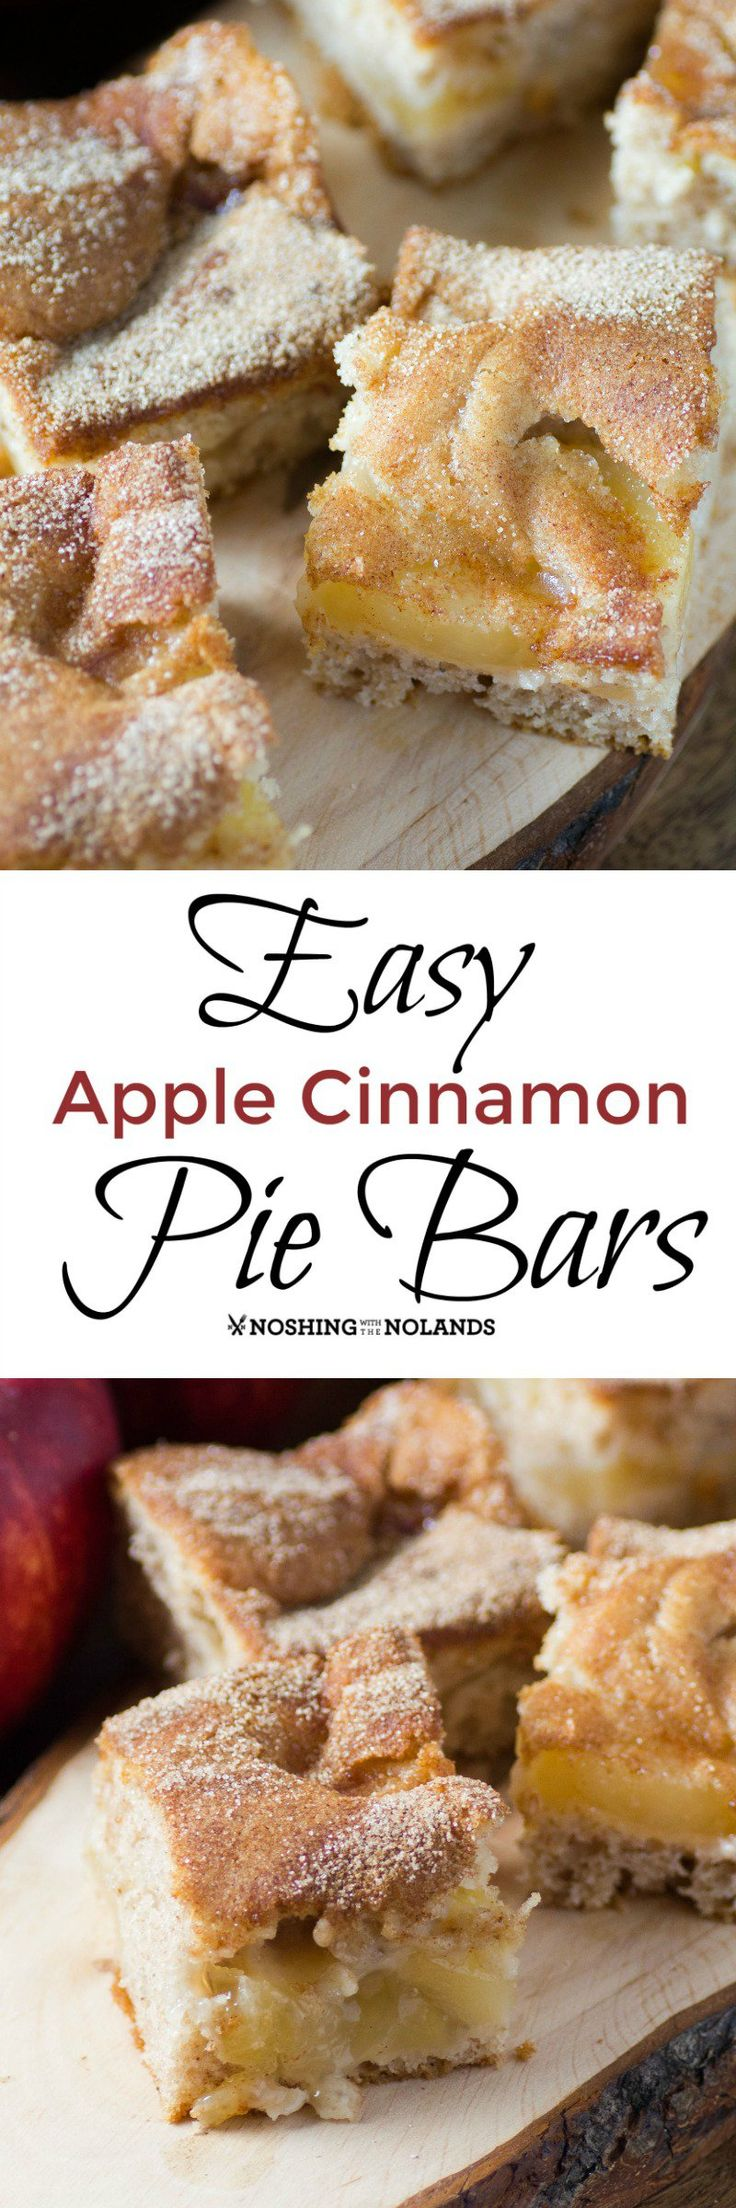 Easy Apple Cinnamon Pie Bars by Noshing With The Nolands are simple to make and bring you the scrumptious flavors of fall.